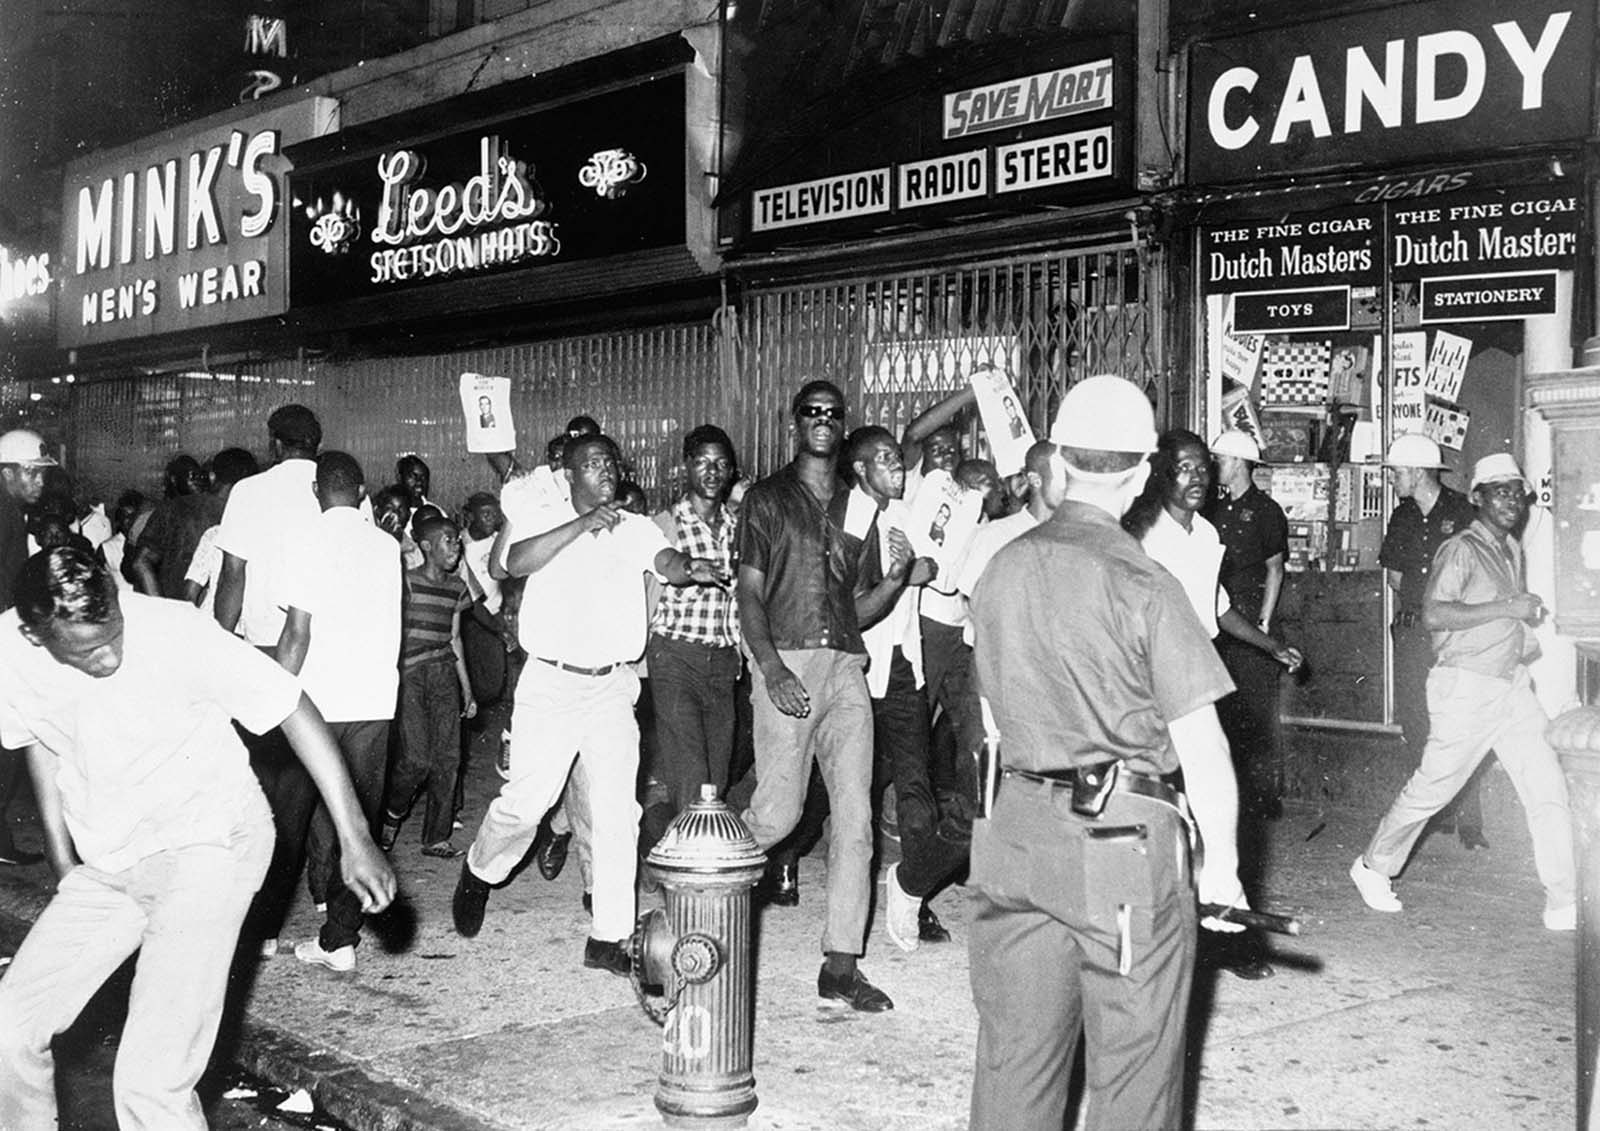 On July 15, 1964, a 15-year-old African American named James Powell was shot and killed by New York Police Lieutenant Thomas Gilligan. The fatal shooting stirred rioters to race through Harlem streets carrying pictures of Gilligan, starting what would turn into six days of chaos, leaving one dead, 118 injured, and more than 450 arrested.